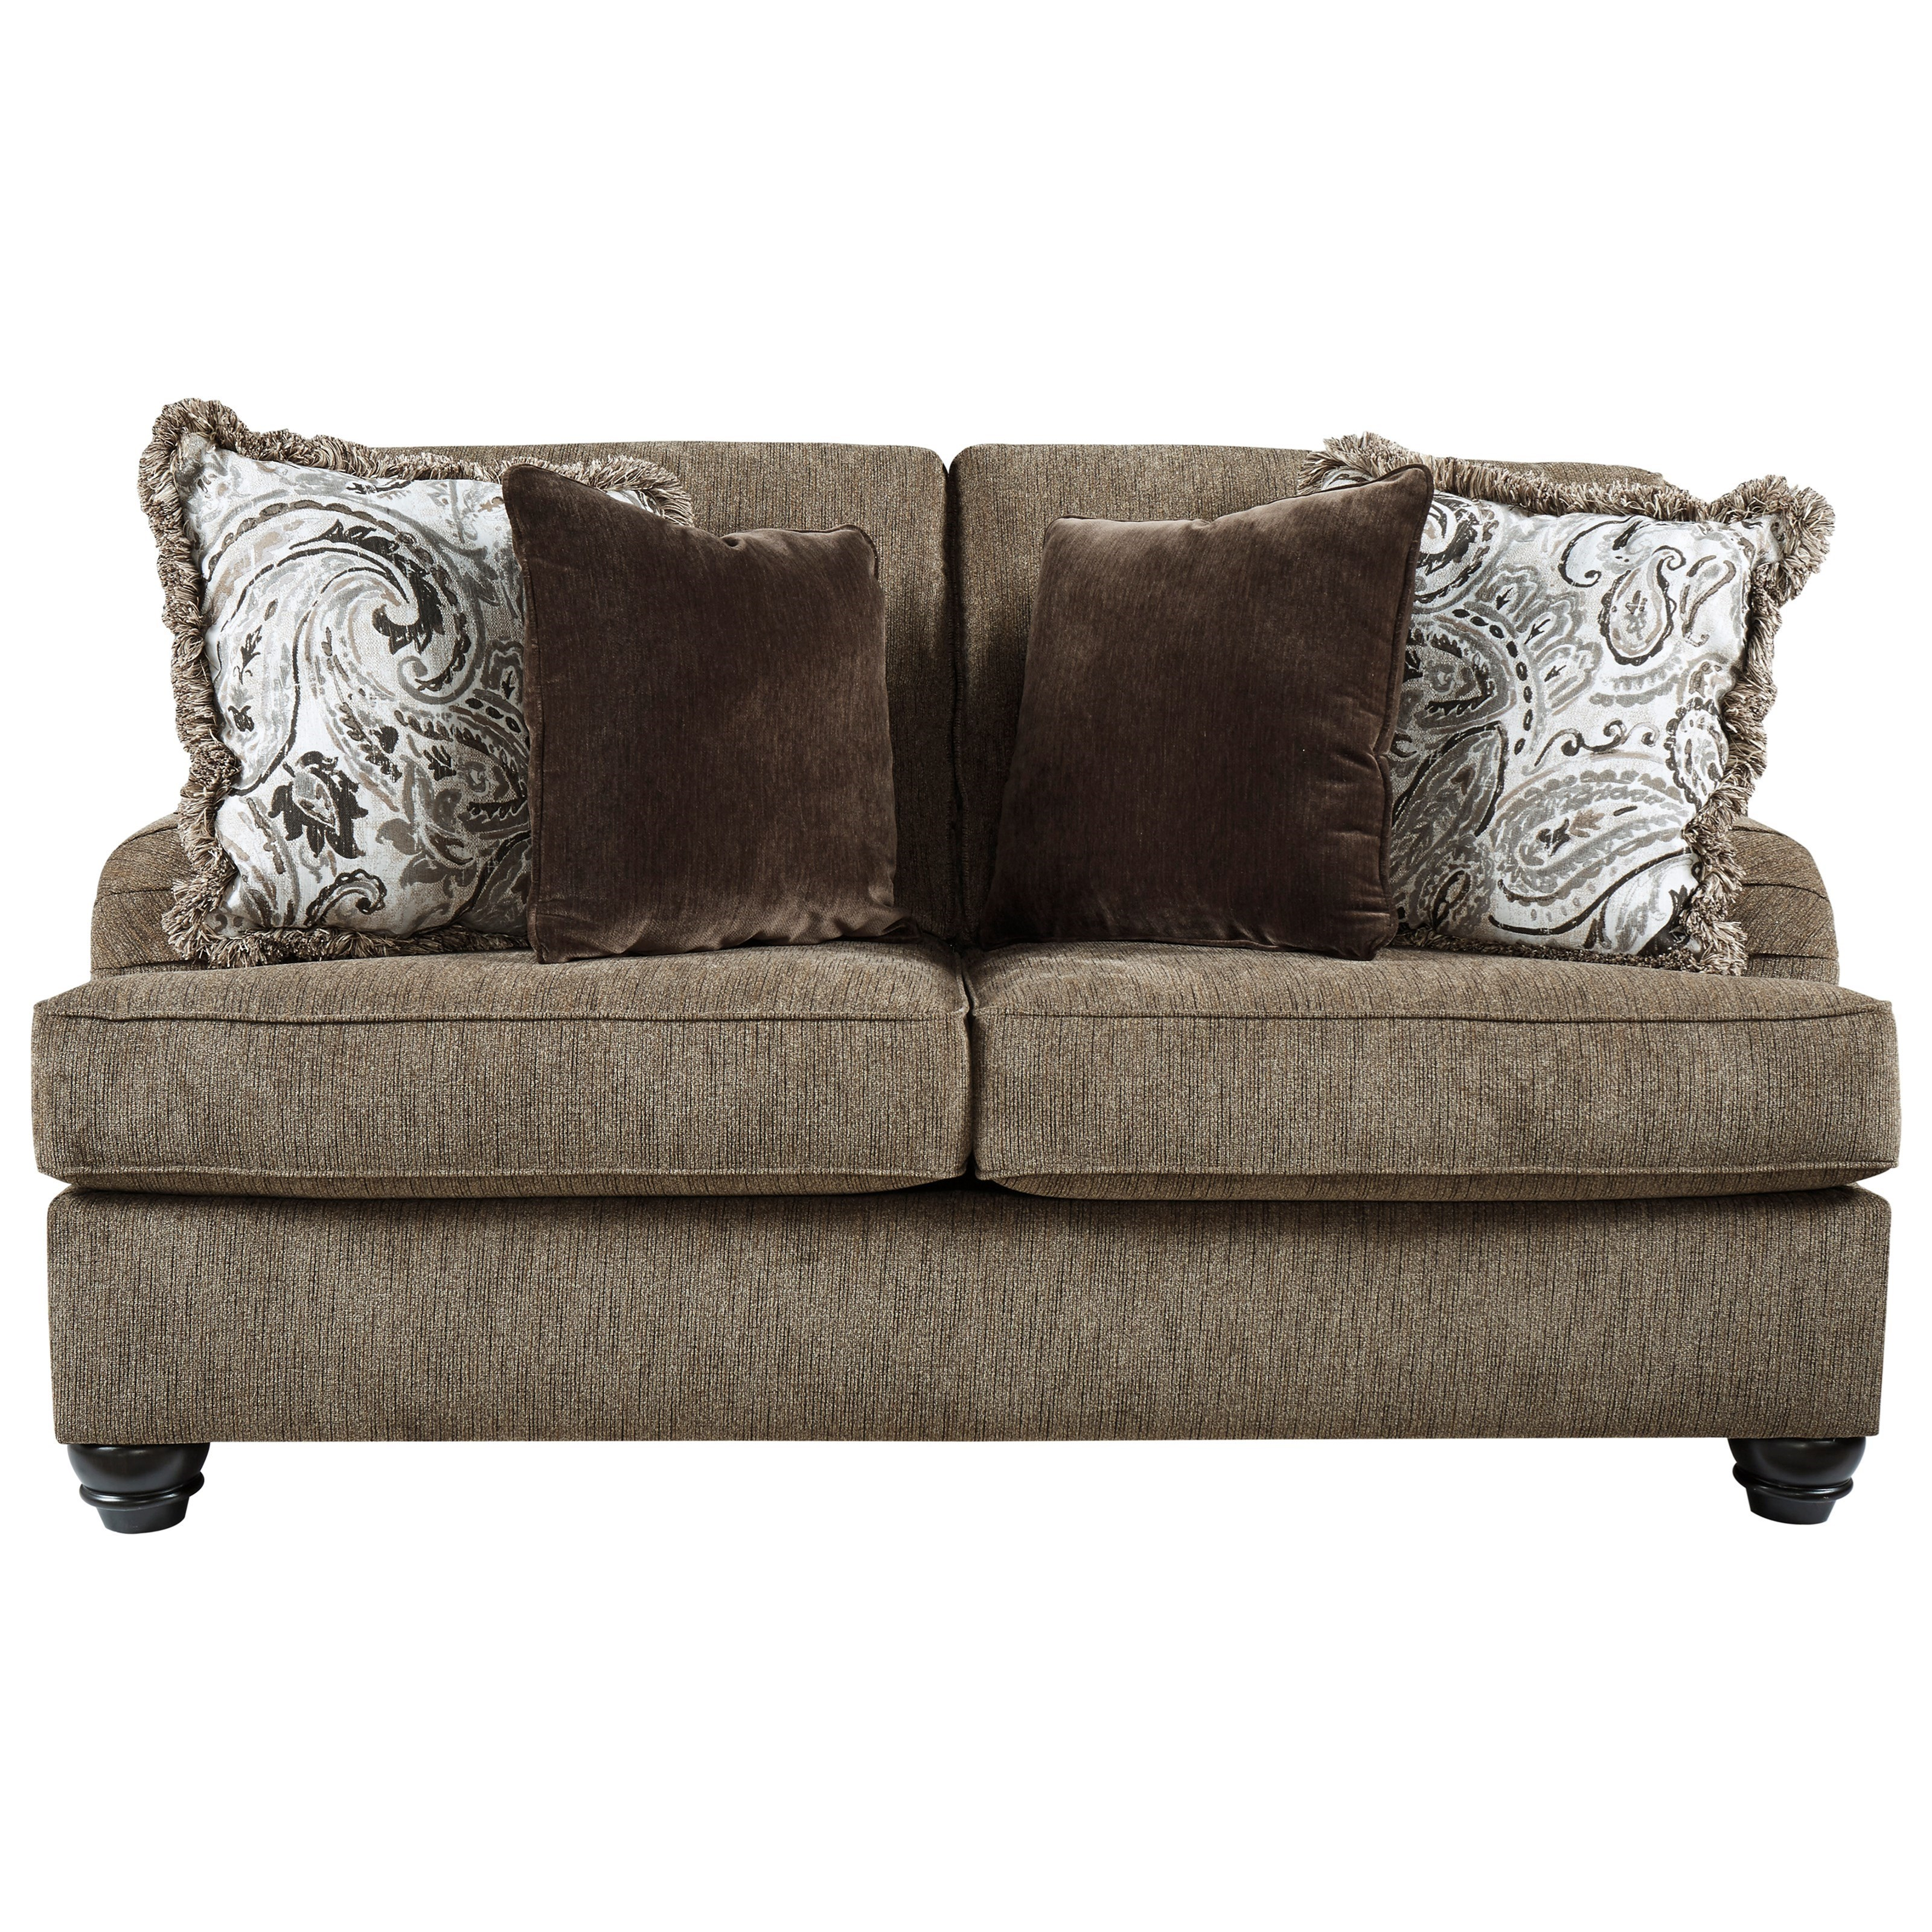 Braemar Loveseat by Benchcraft at Miller Waldrop Furniture and Decor